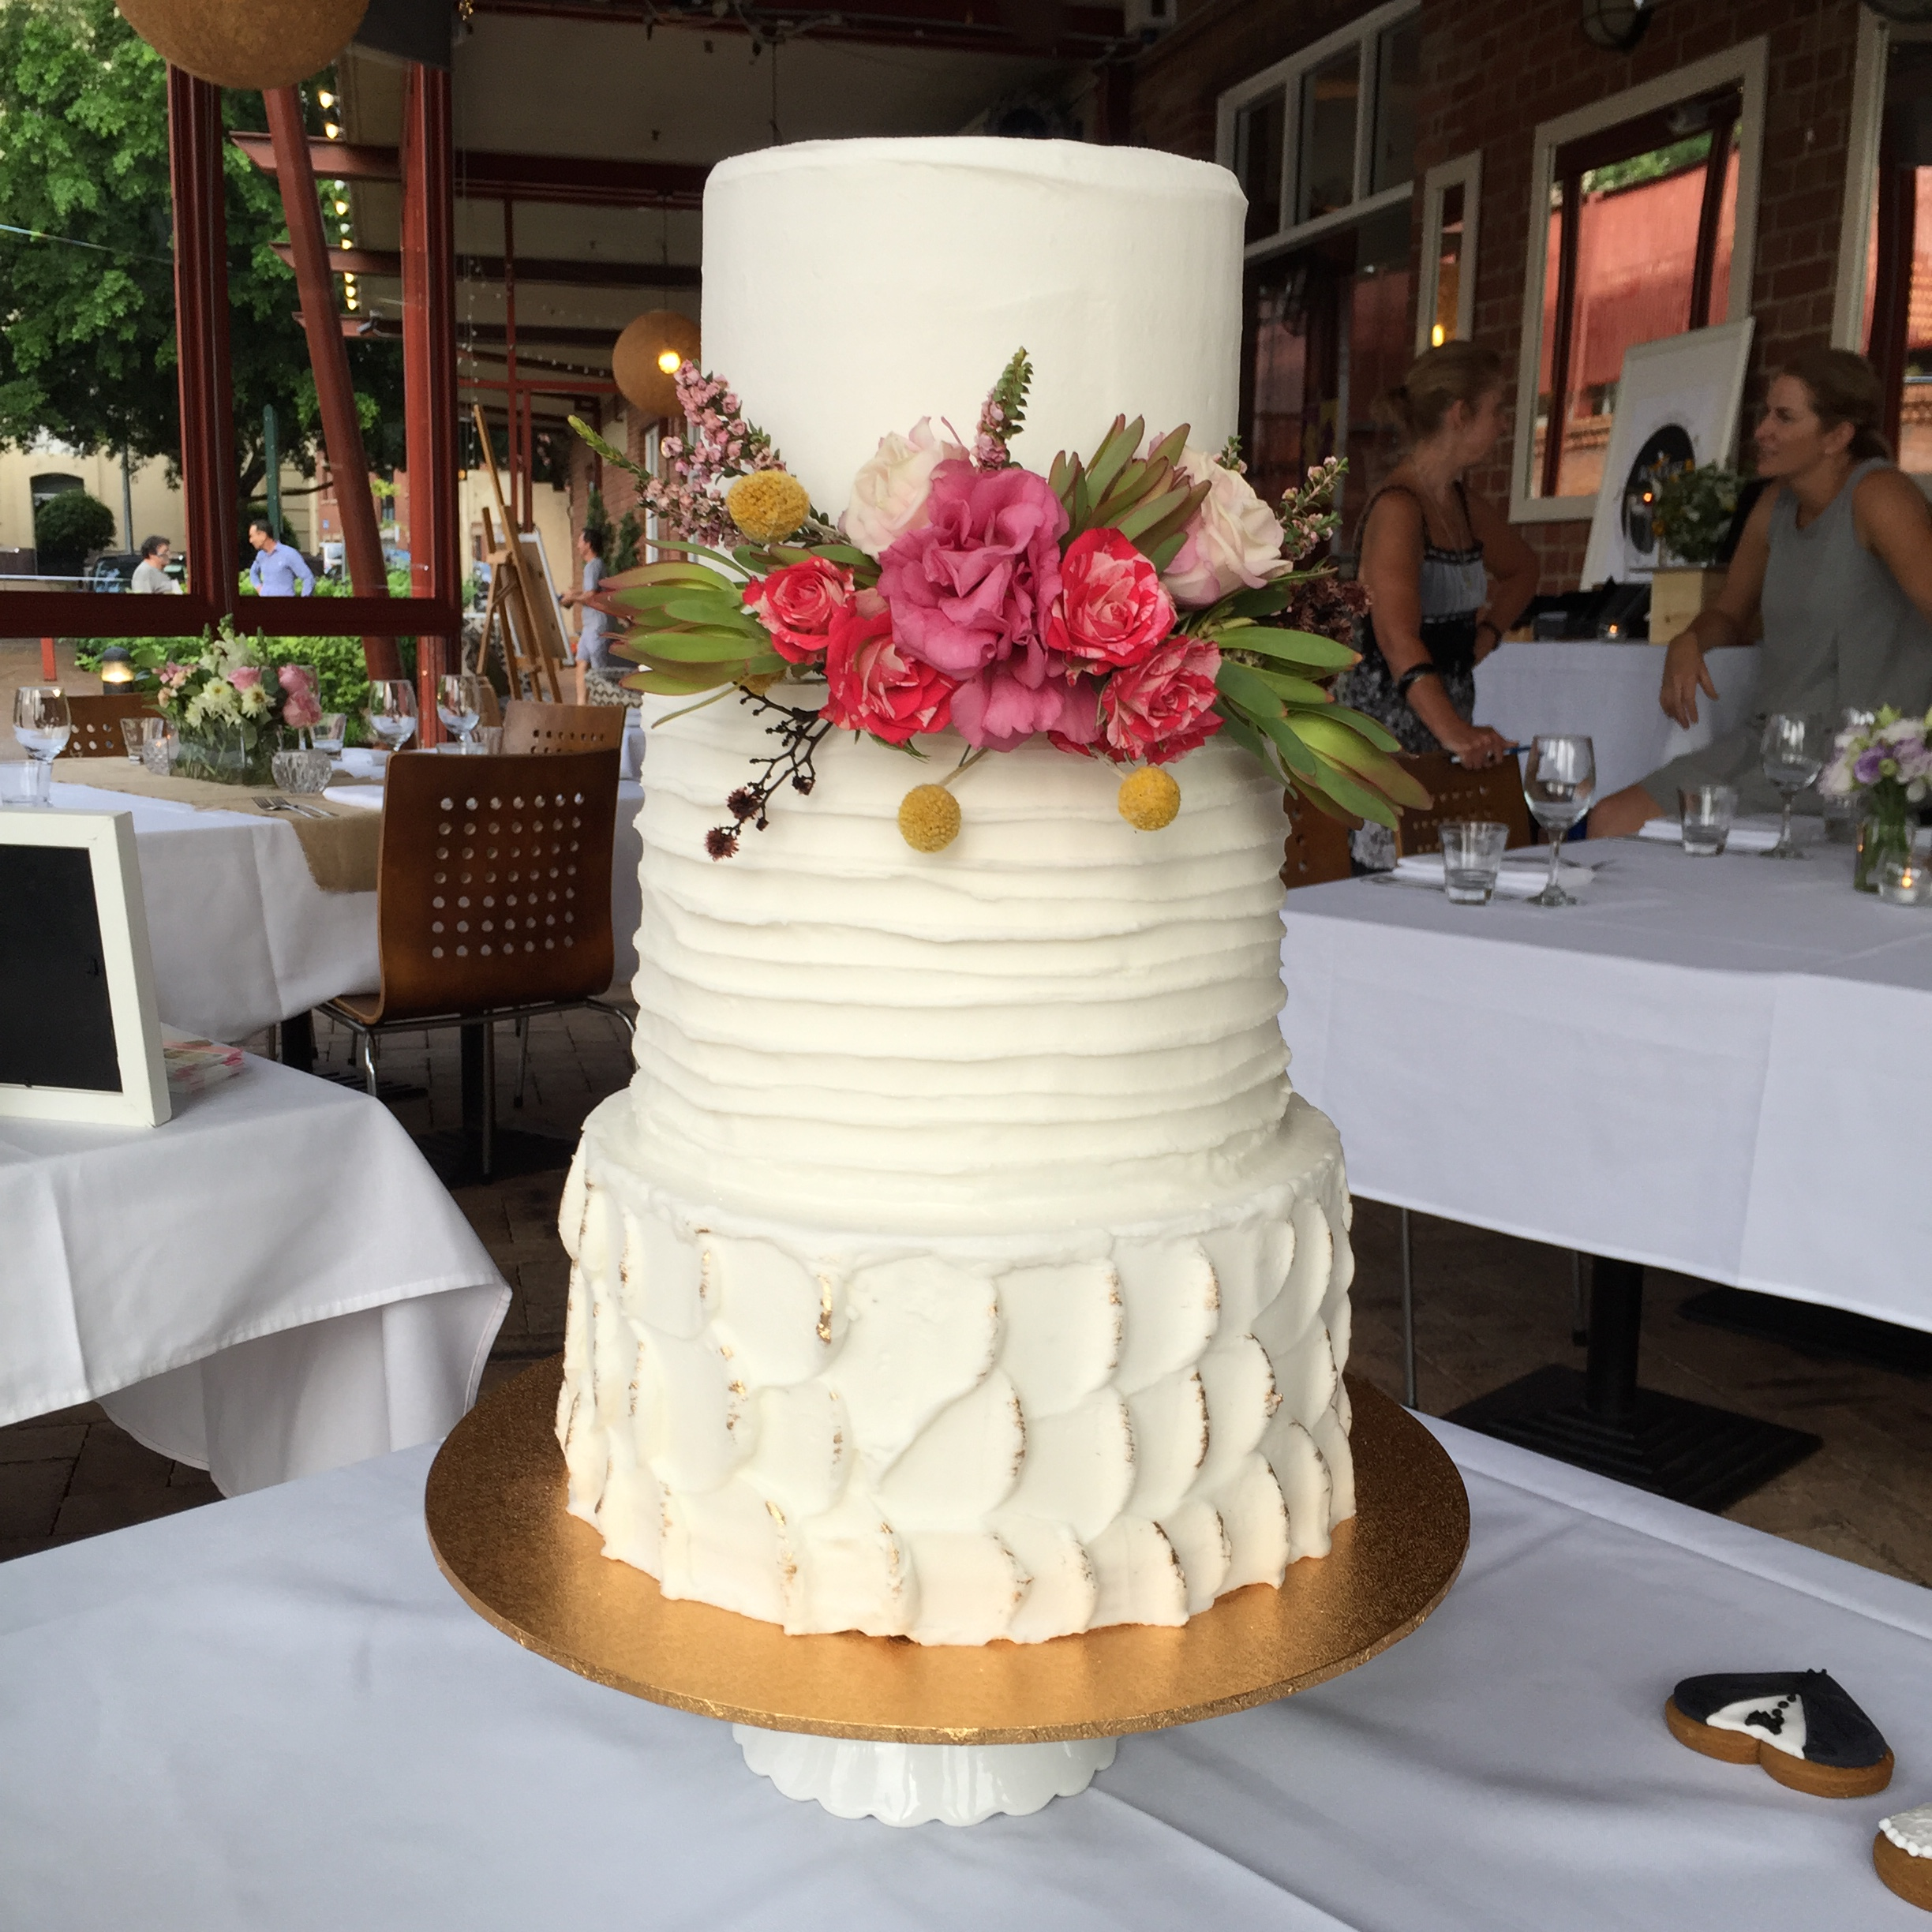 Vanilla pod Wedding Cake with fresh florals by Bouquet Boutique textured frosting dessert brisbane.JPG